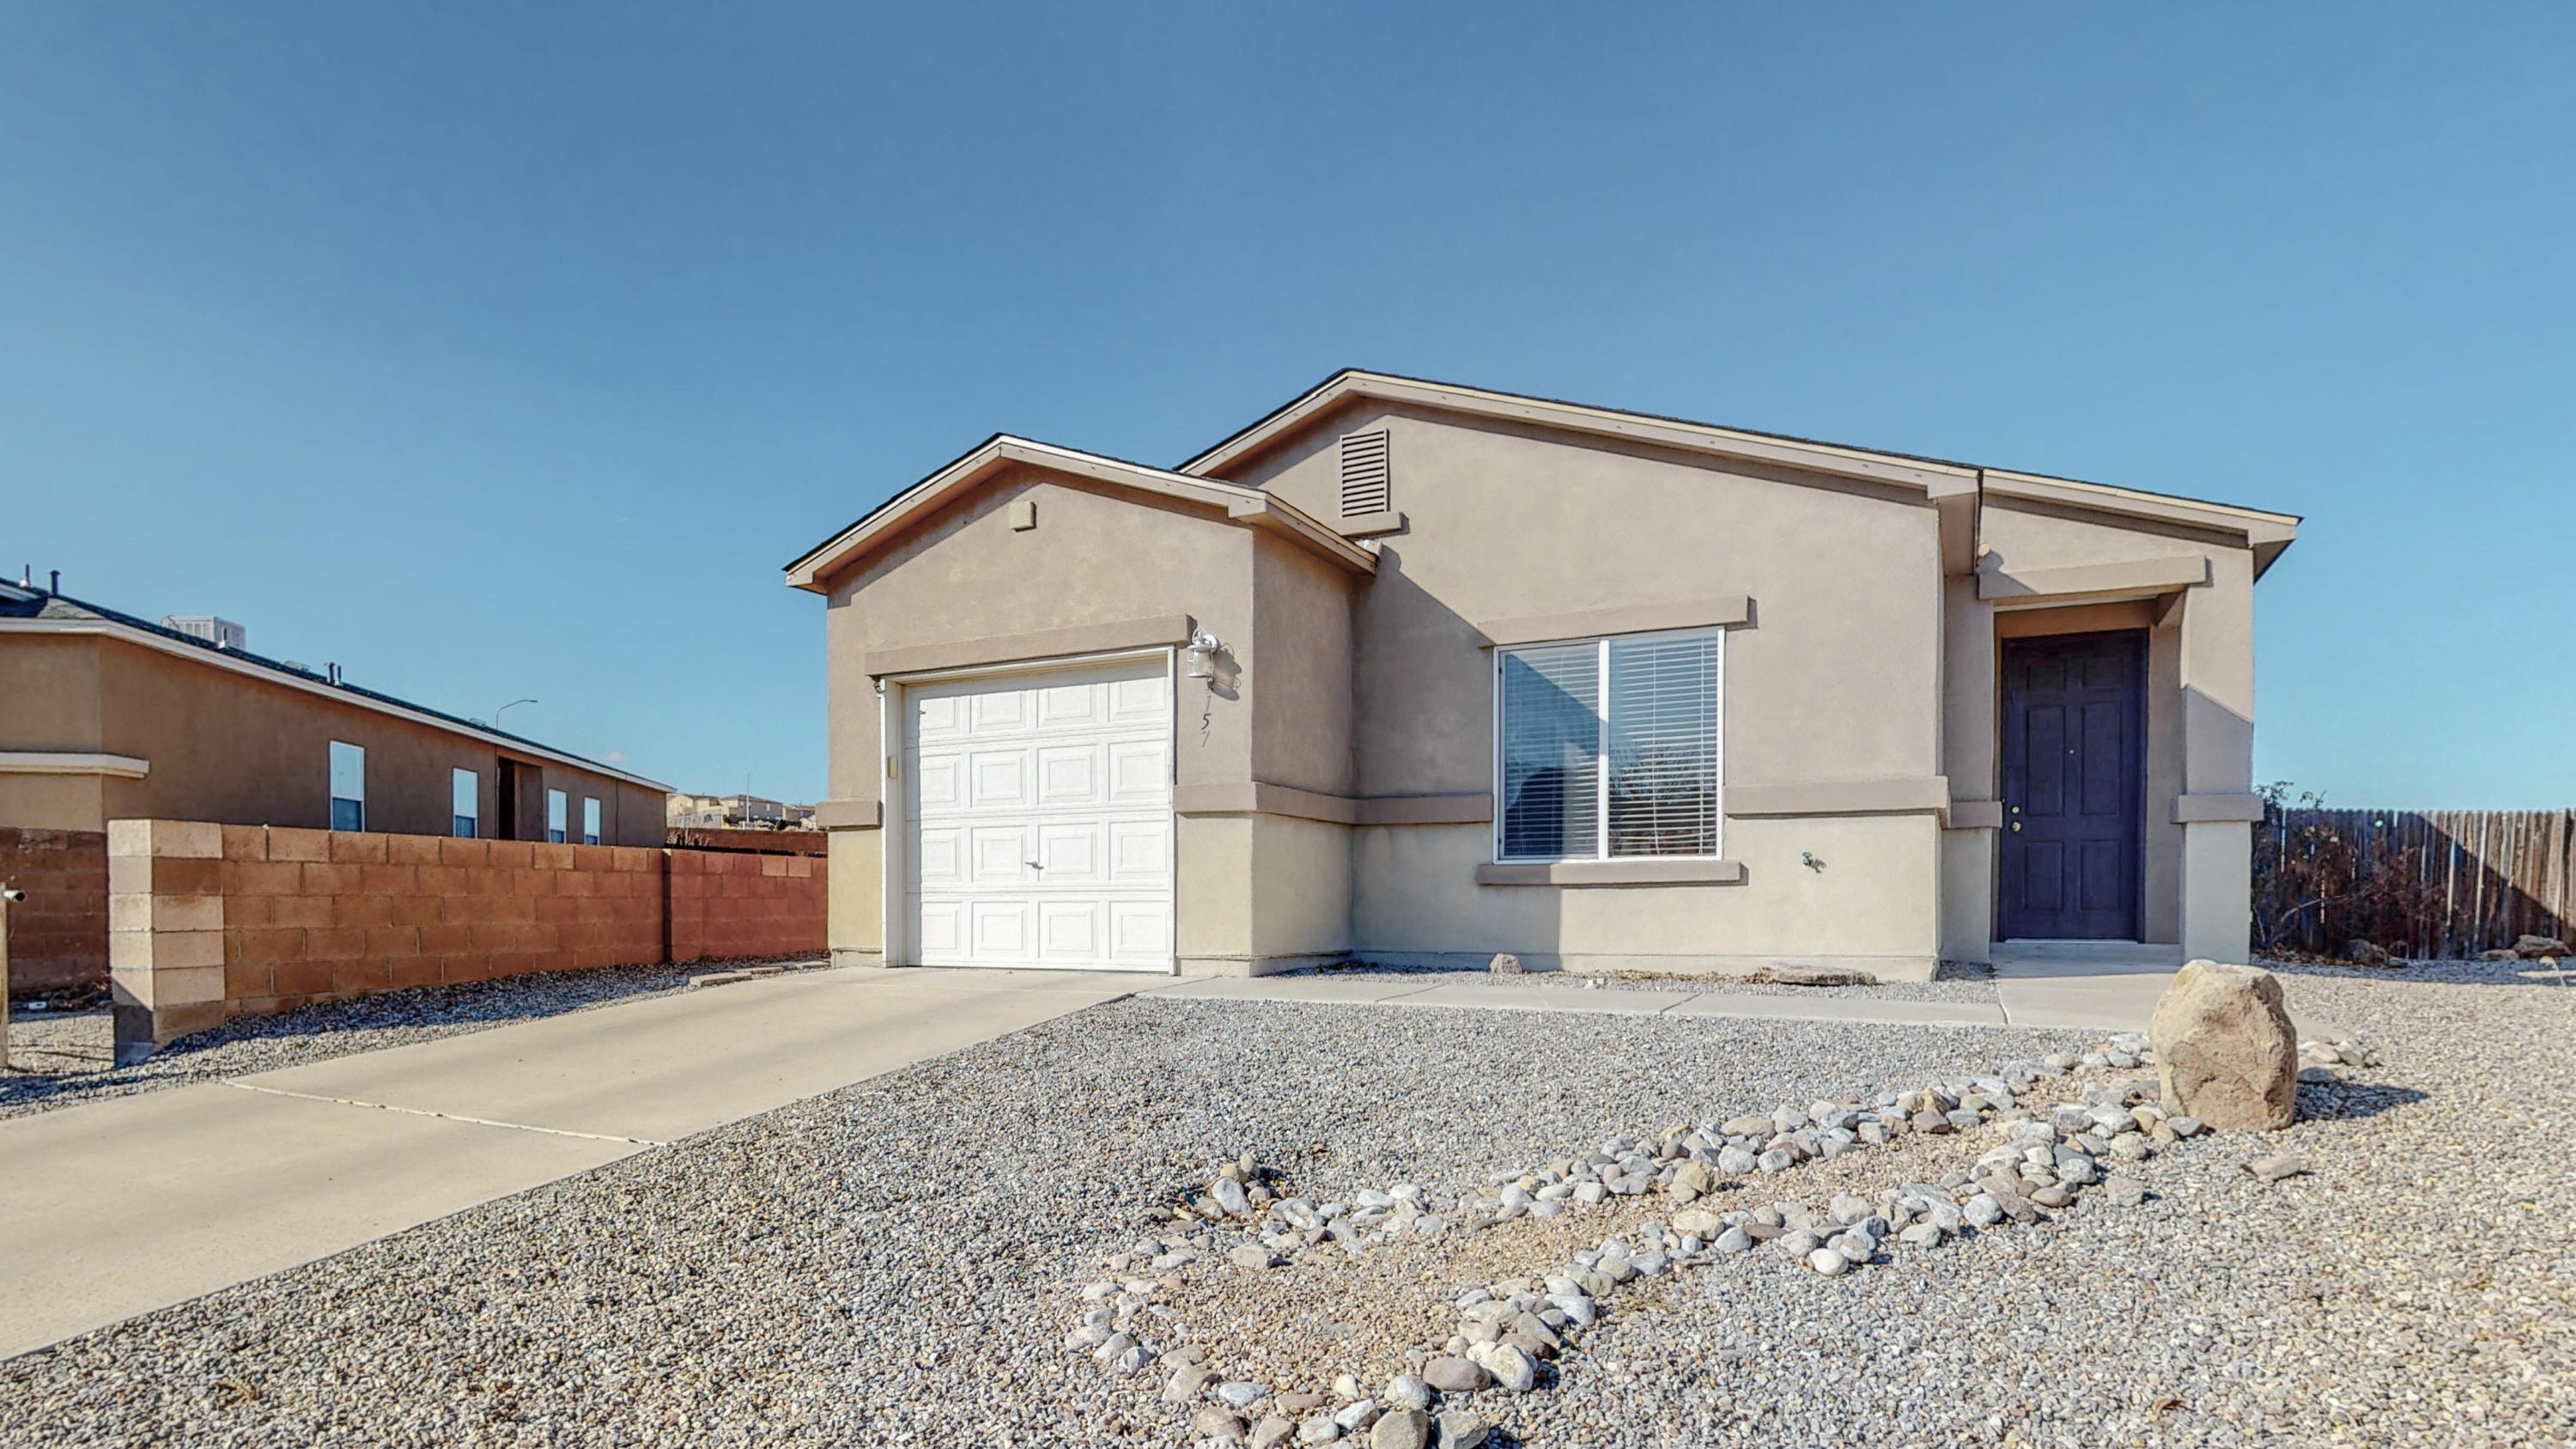 2157 SAGECREST Loop, Rio Rancho NM 87144